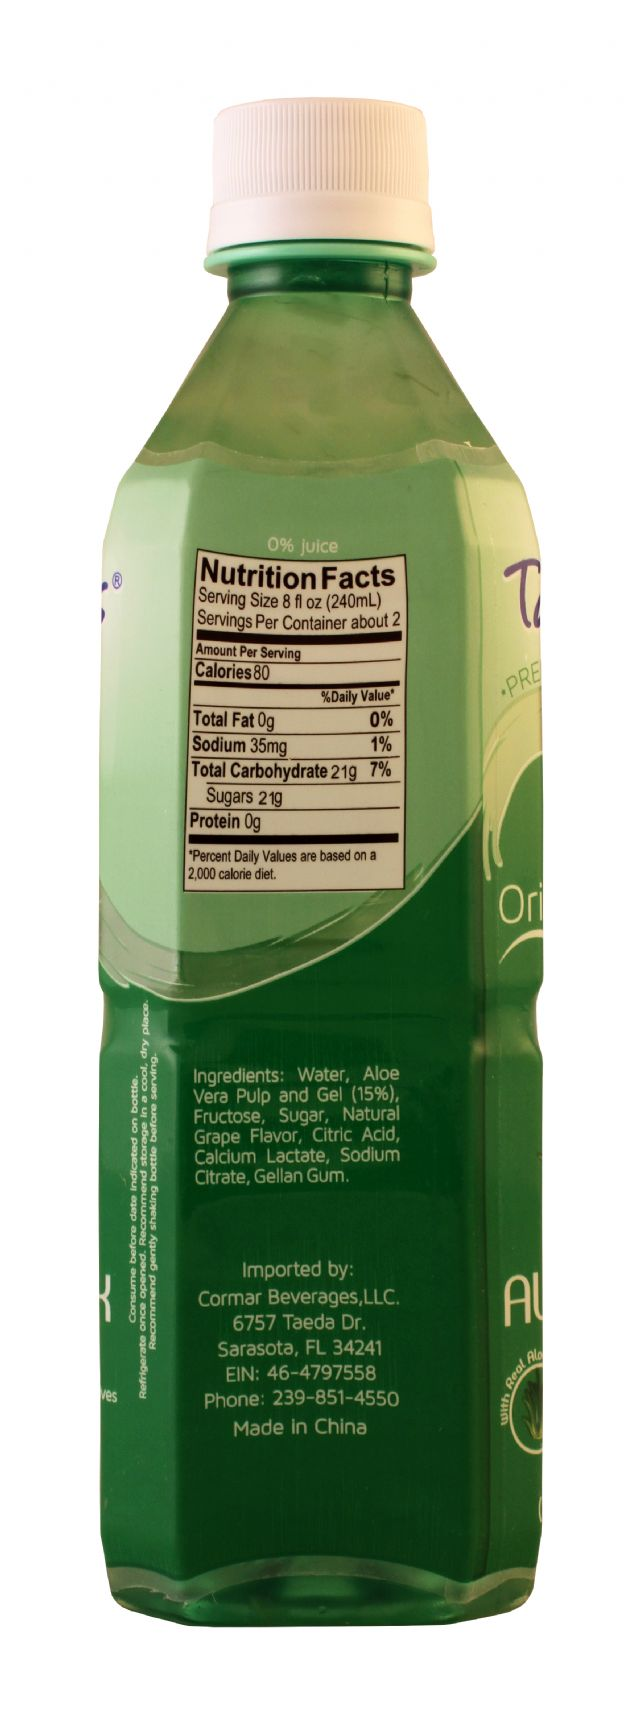 Tamesis Aloe Drink: Tamesis Original Facts